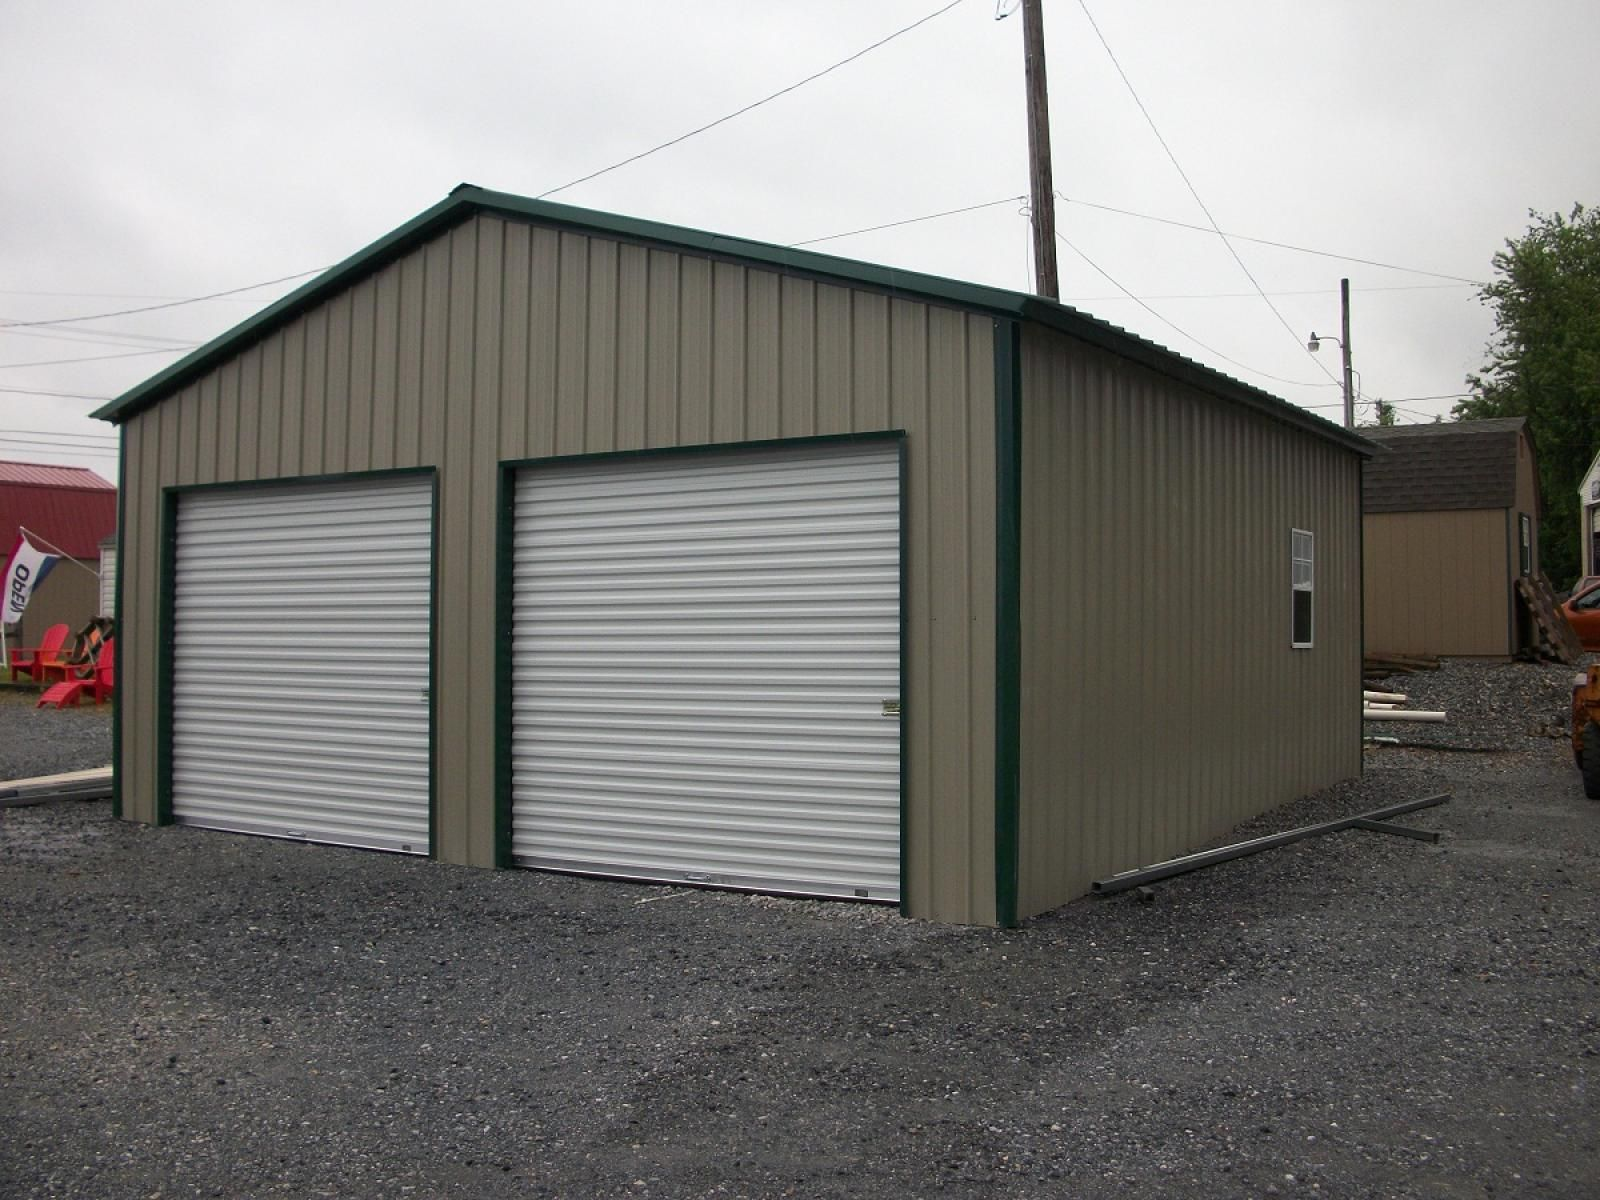 Ideal Steel Carports The ideal place for your steel